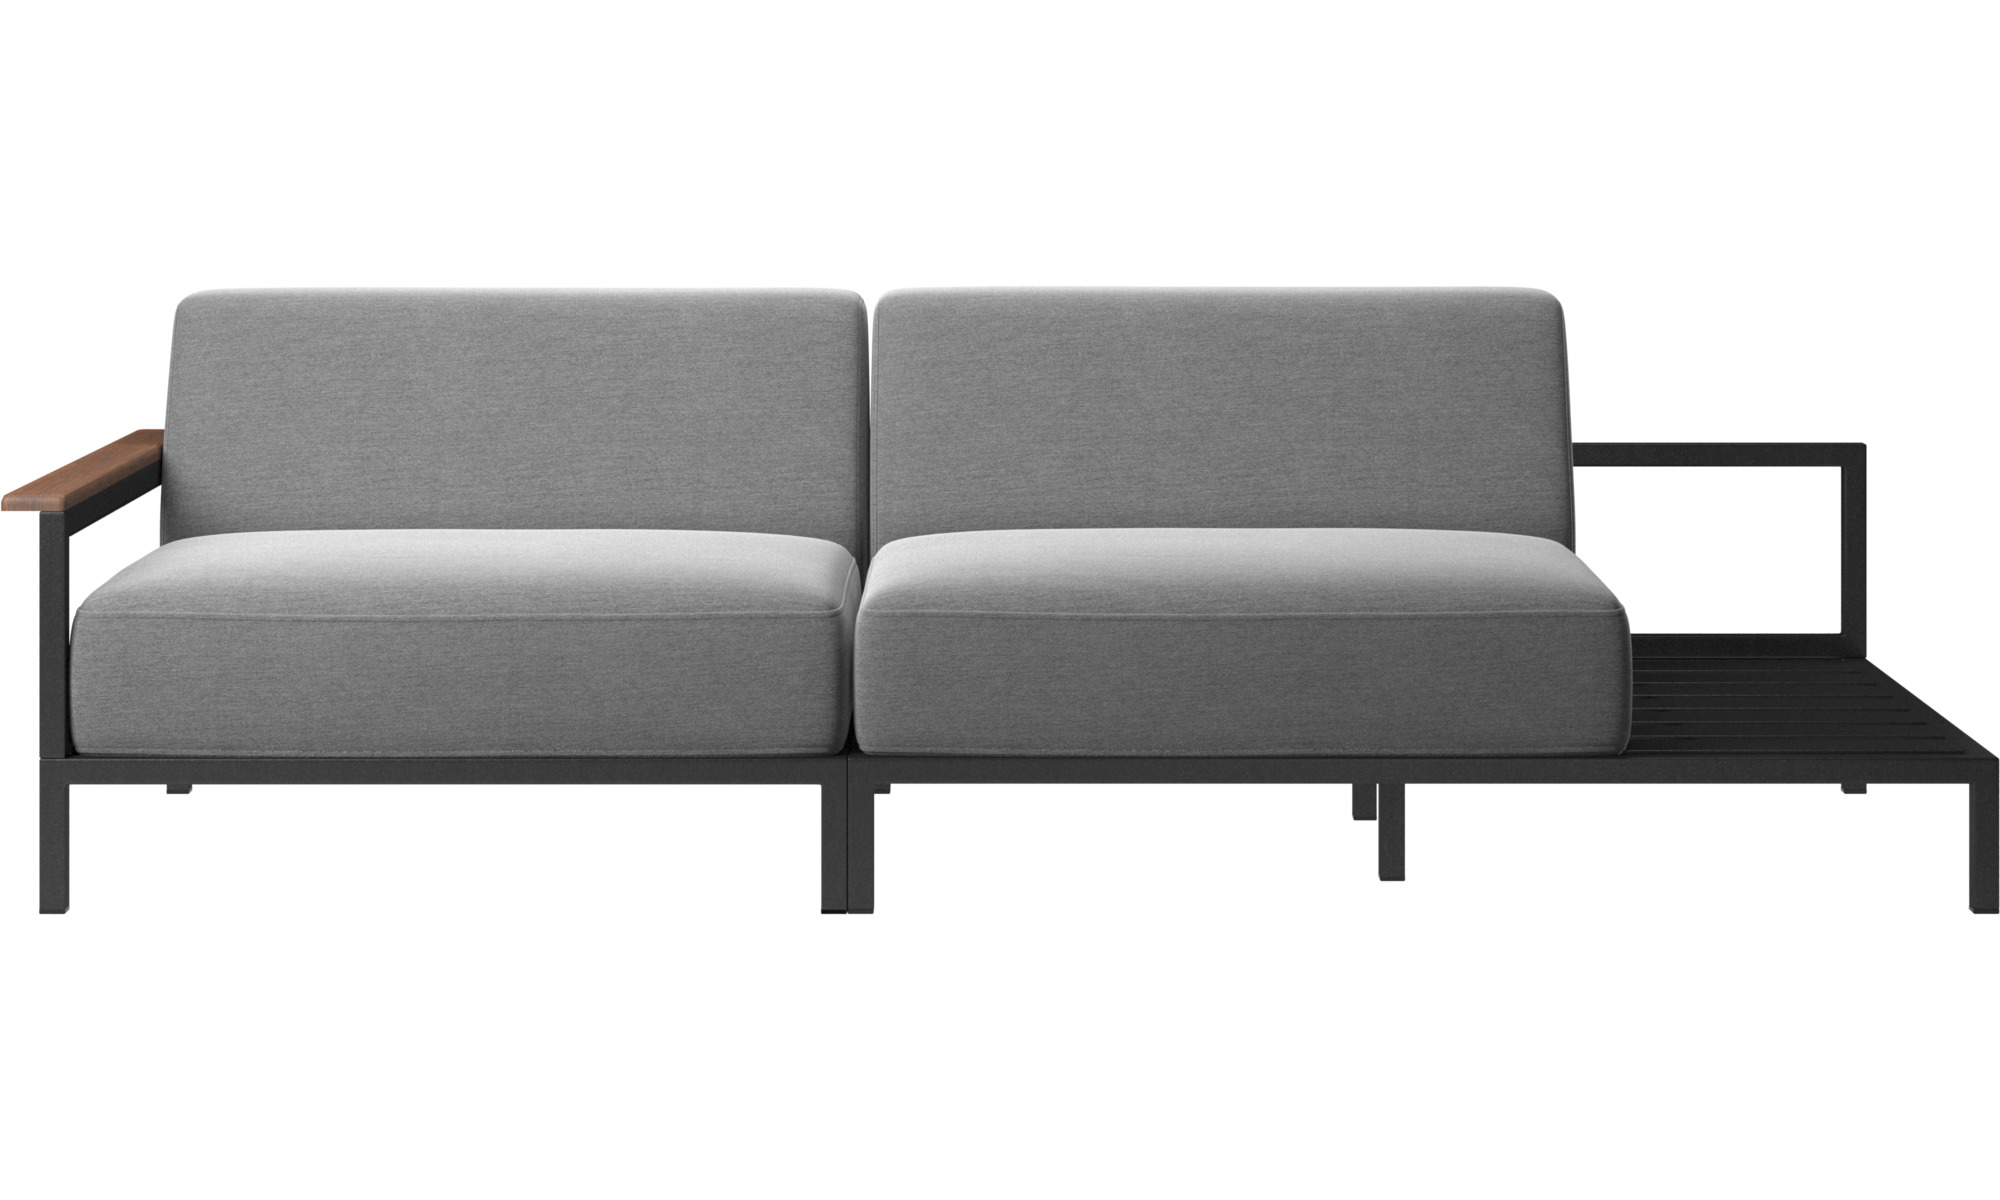 Outdoor Sofas Rome Sofa Gray Fabric